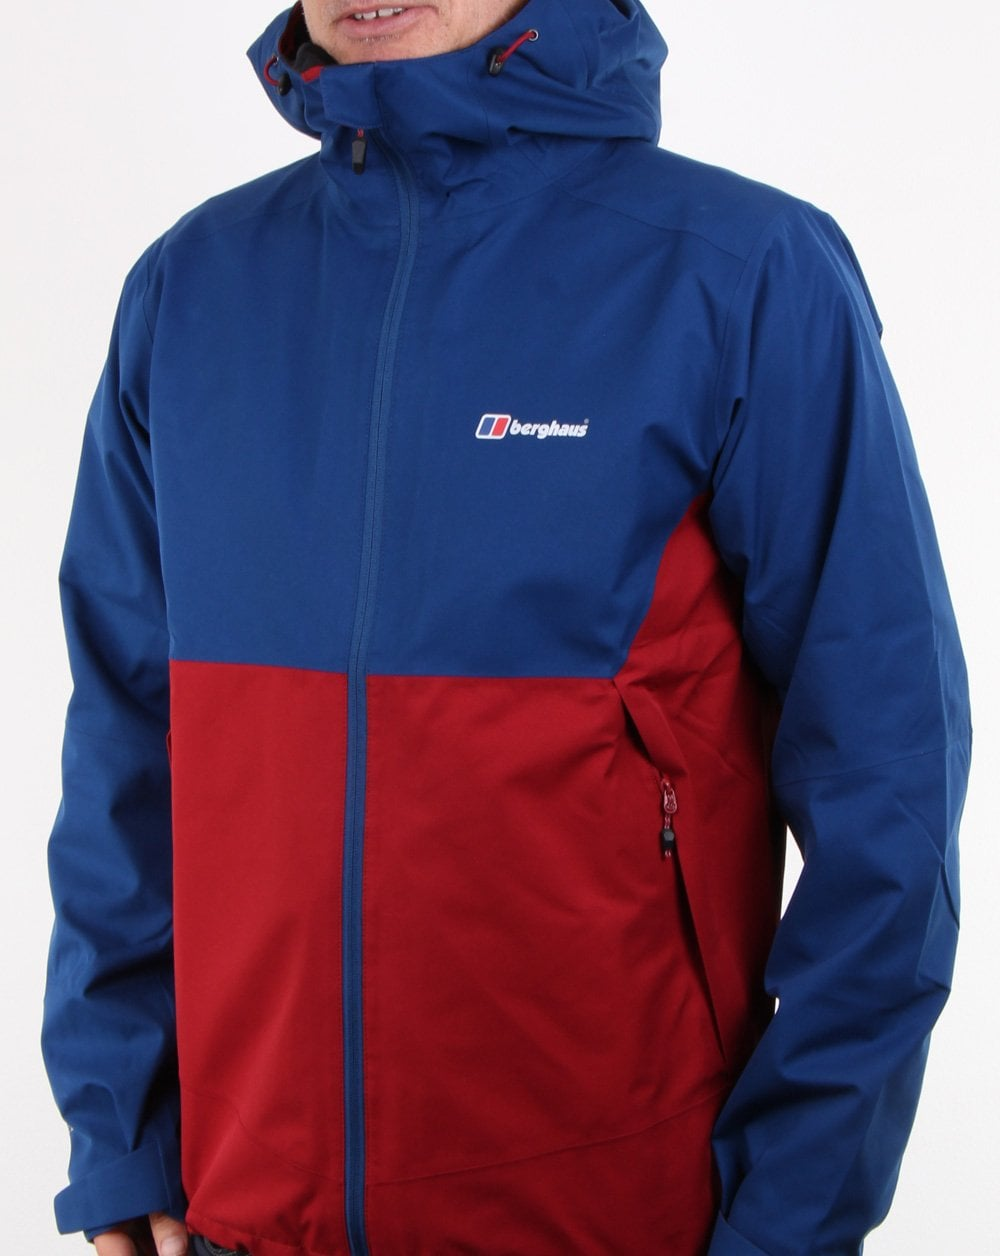 special for shoe how to get terrific value Berghaus Fellmaster Jacket Red Dahlia/Deep Water